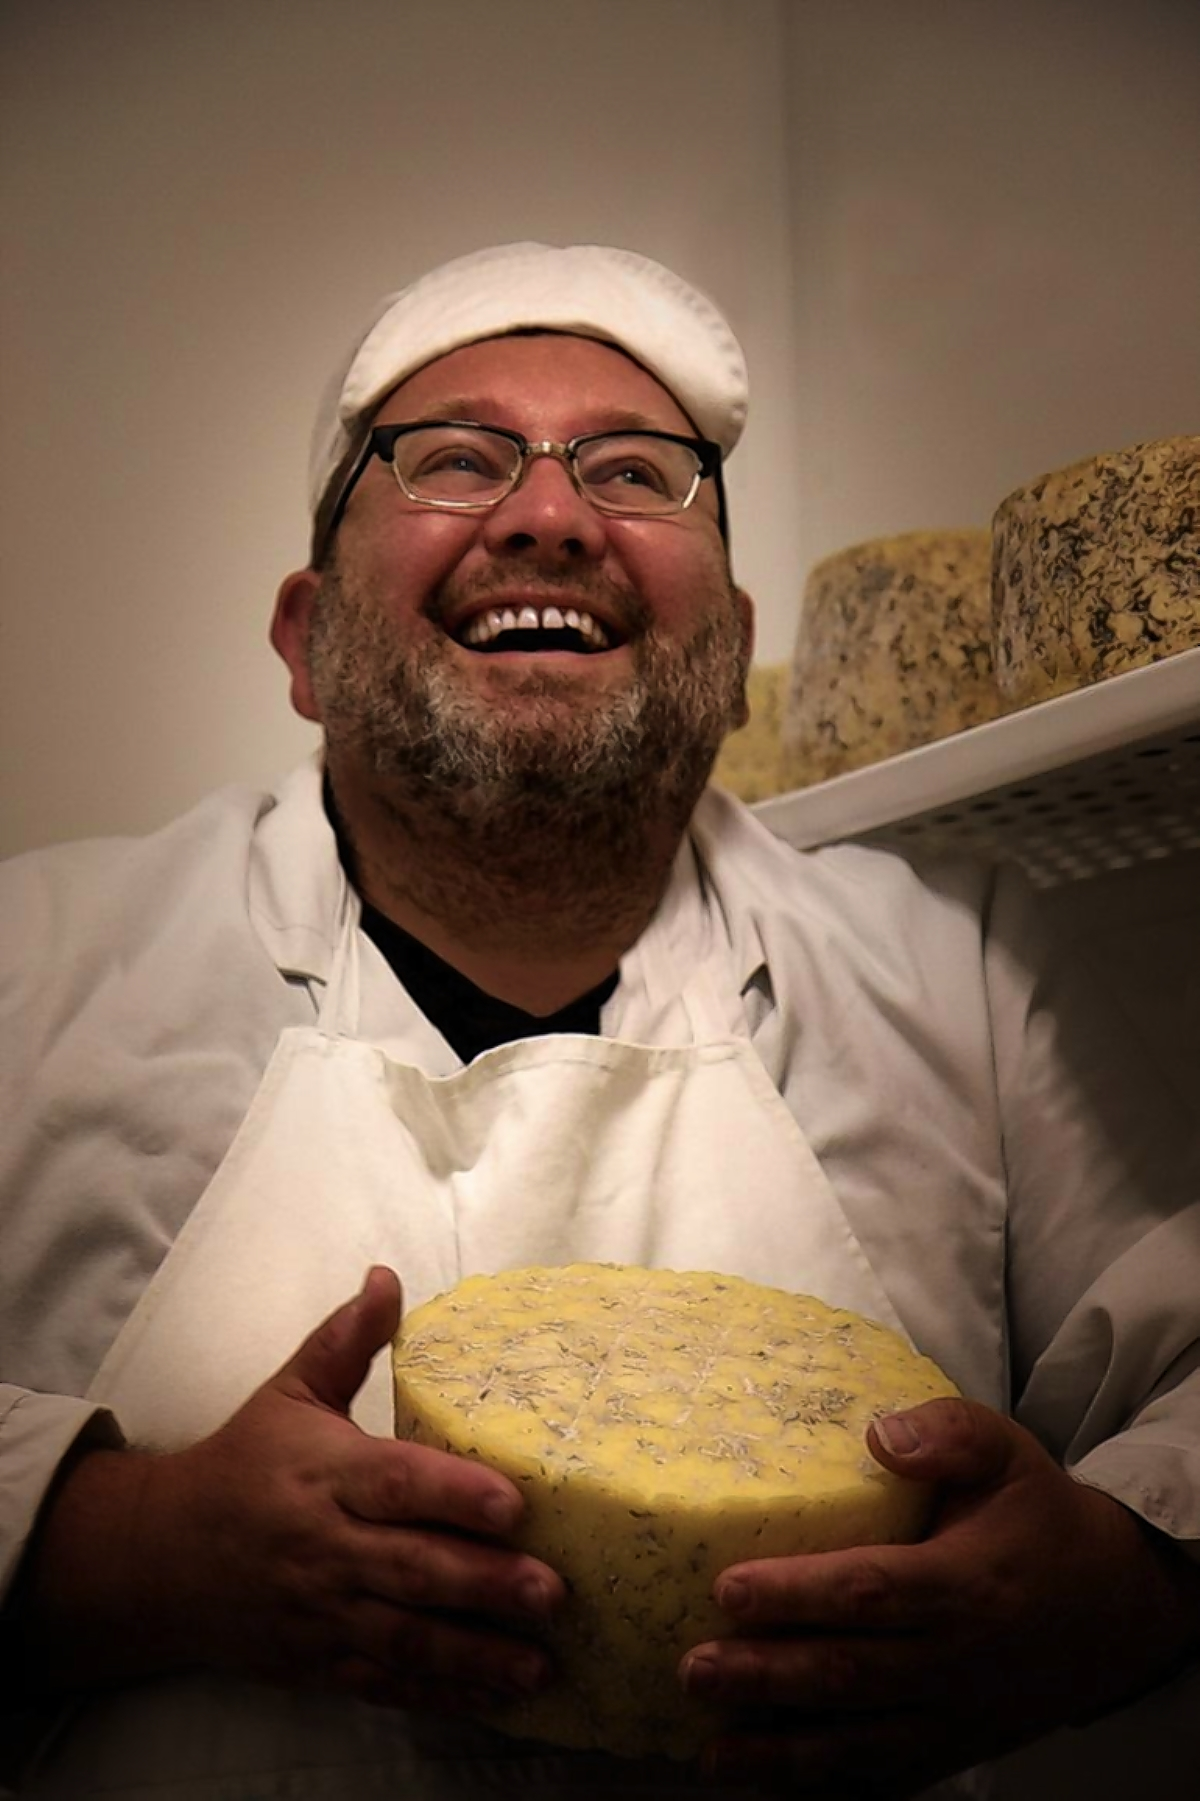 Wildes Cheese owner Philip Wilton is looking forward to spending more time meeting customers